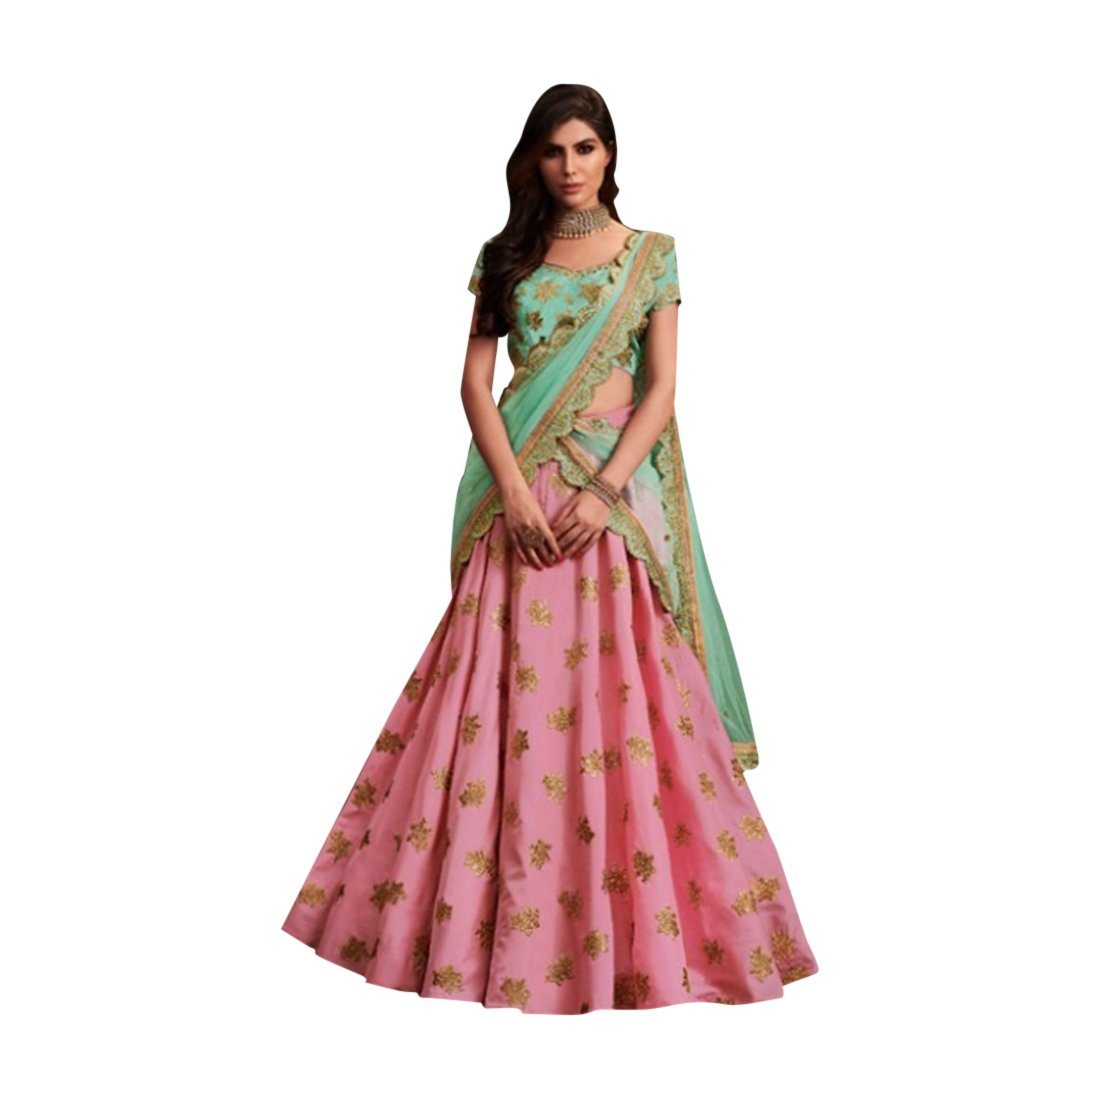 acb81a5fb6 10 DRESSES FOR WOMEN LADIES 2019 Indian party wear ... - YouTube